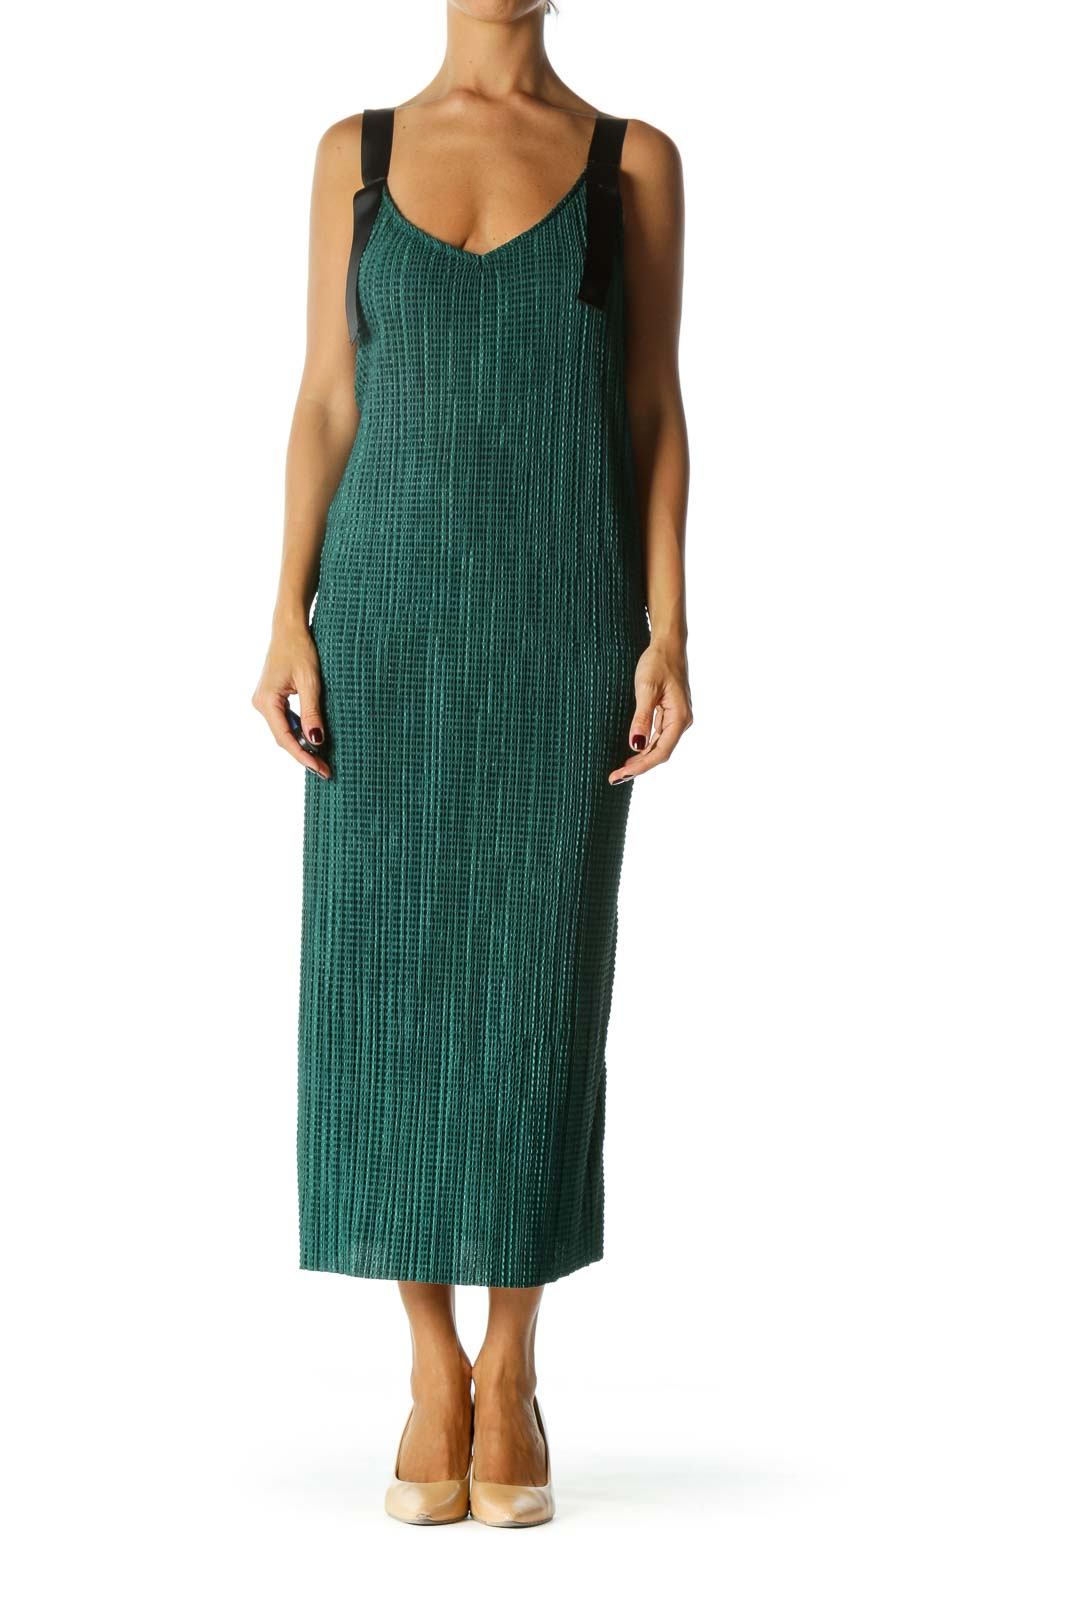 Emerald Green Black Knot Straps V-Neck Waffle Texture Stretch Dress Front